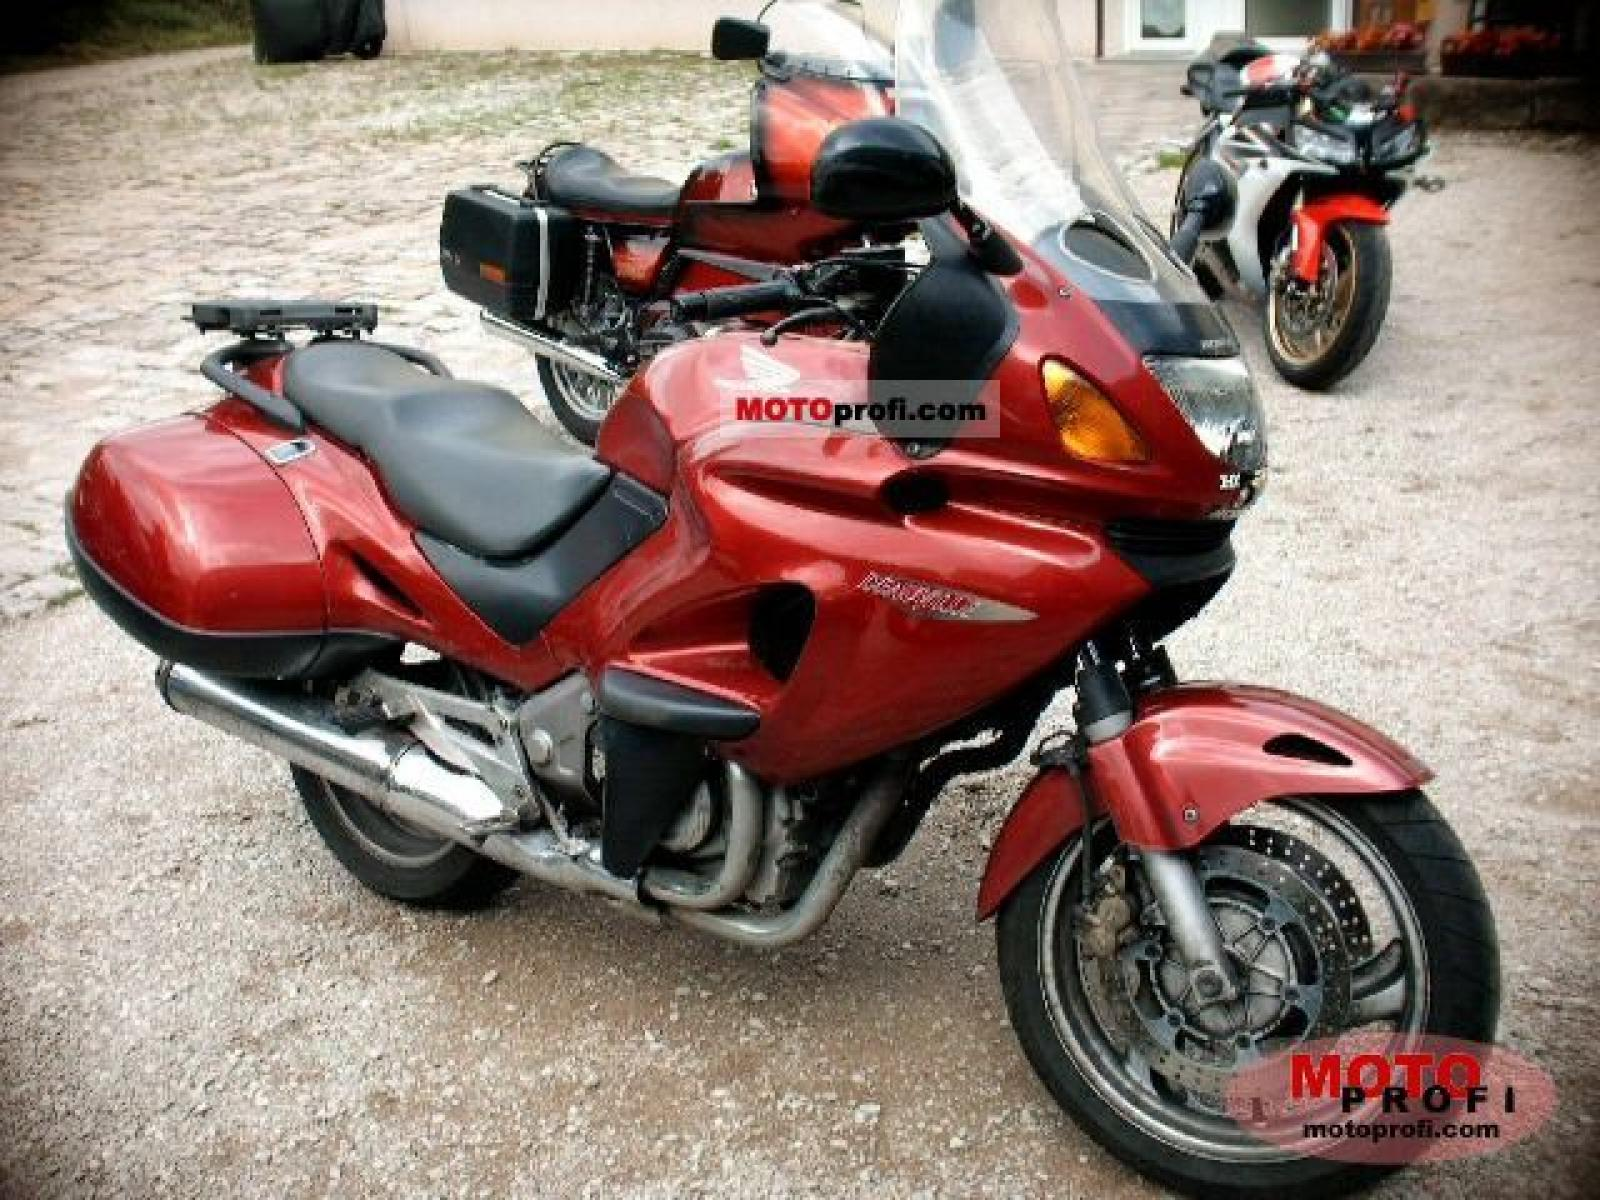 2001 Honda Nt 650 Deauville Pics Specs And Information